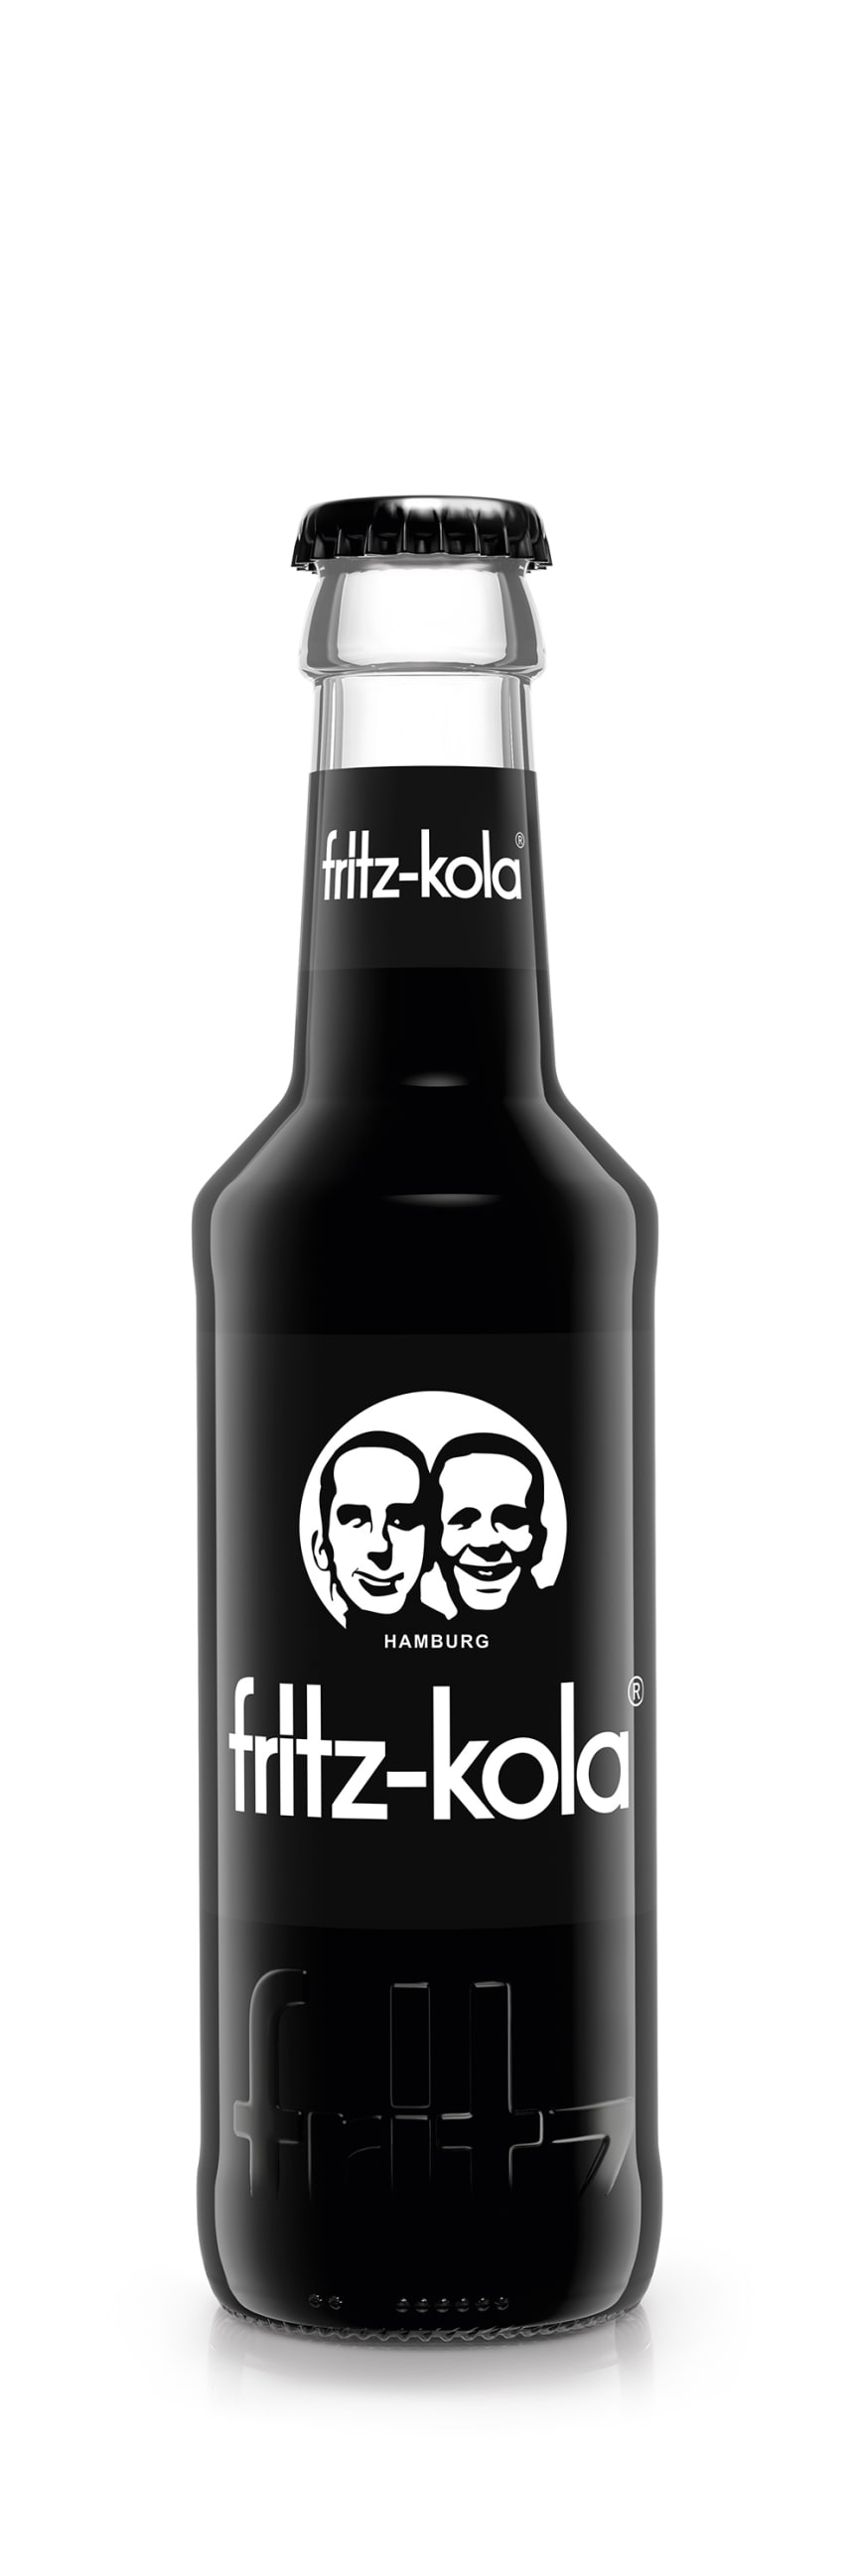 Superunion_Germany_fritz-kola_Gastro-Flasche